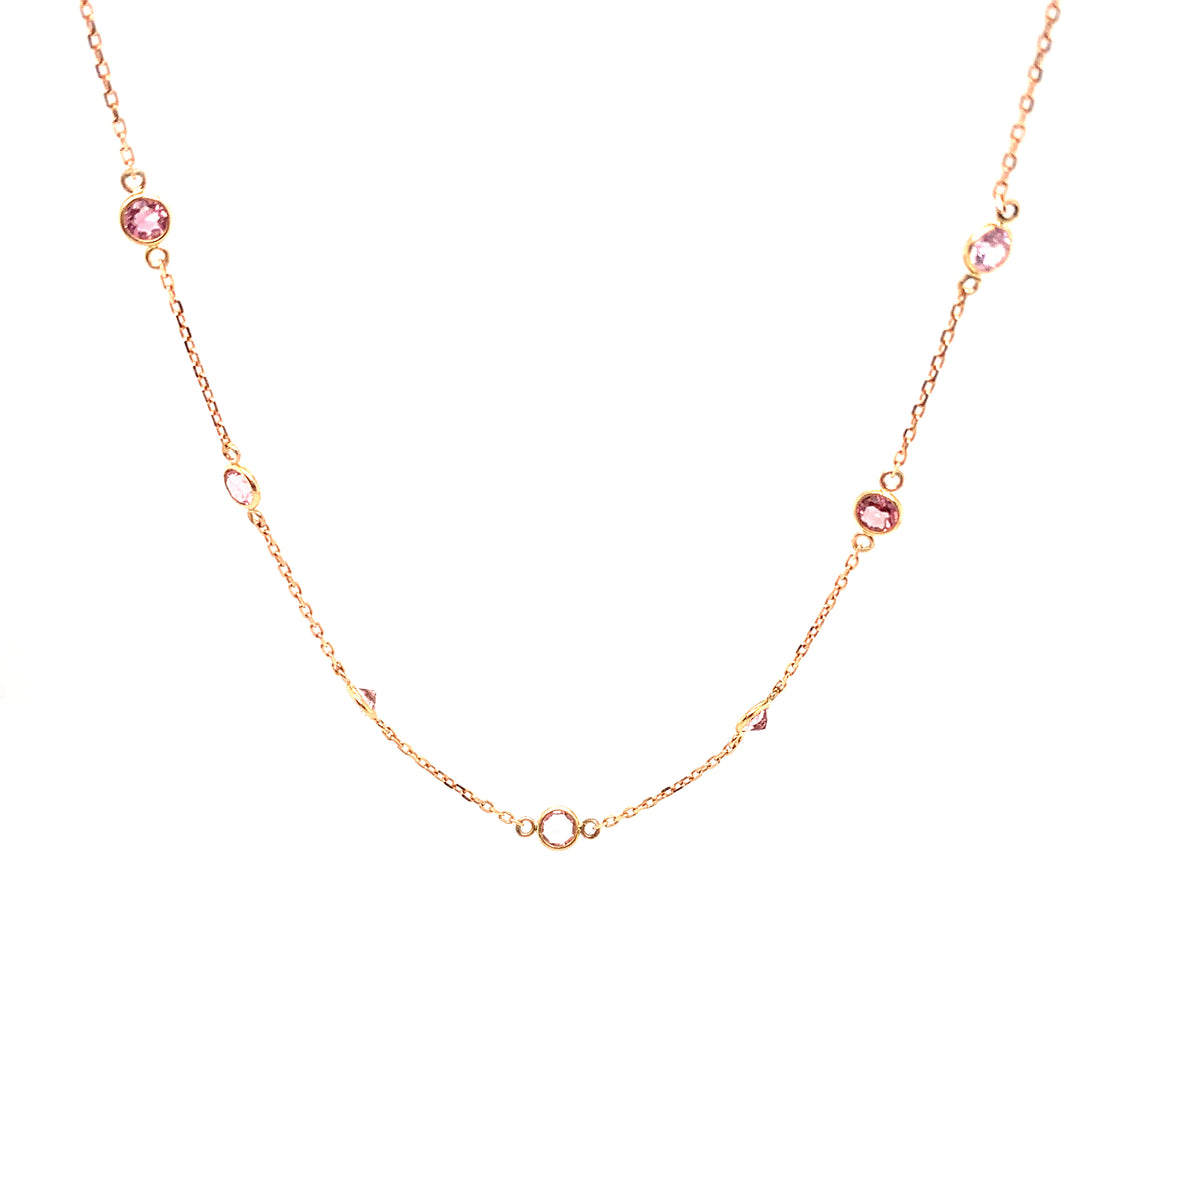 Pink Tourmaline Necklace In 18K Rose Gold